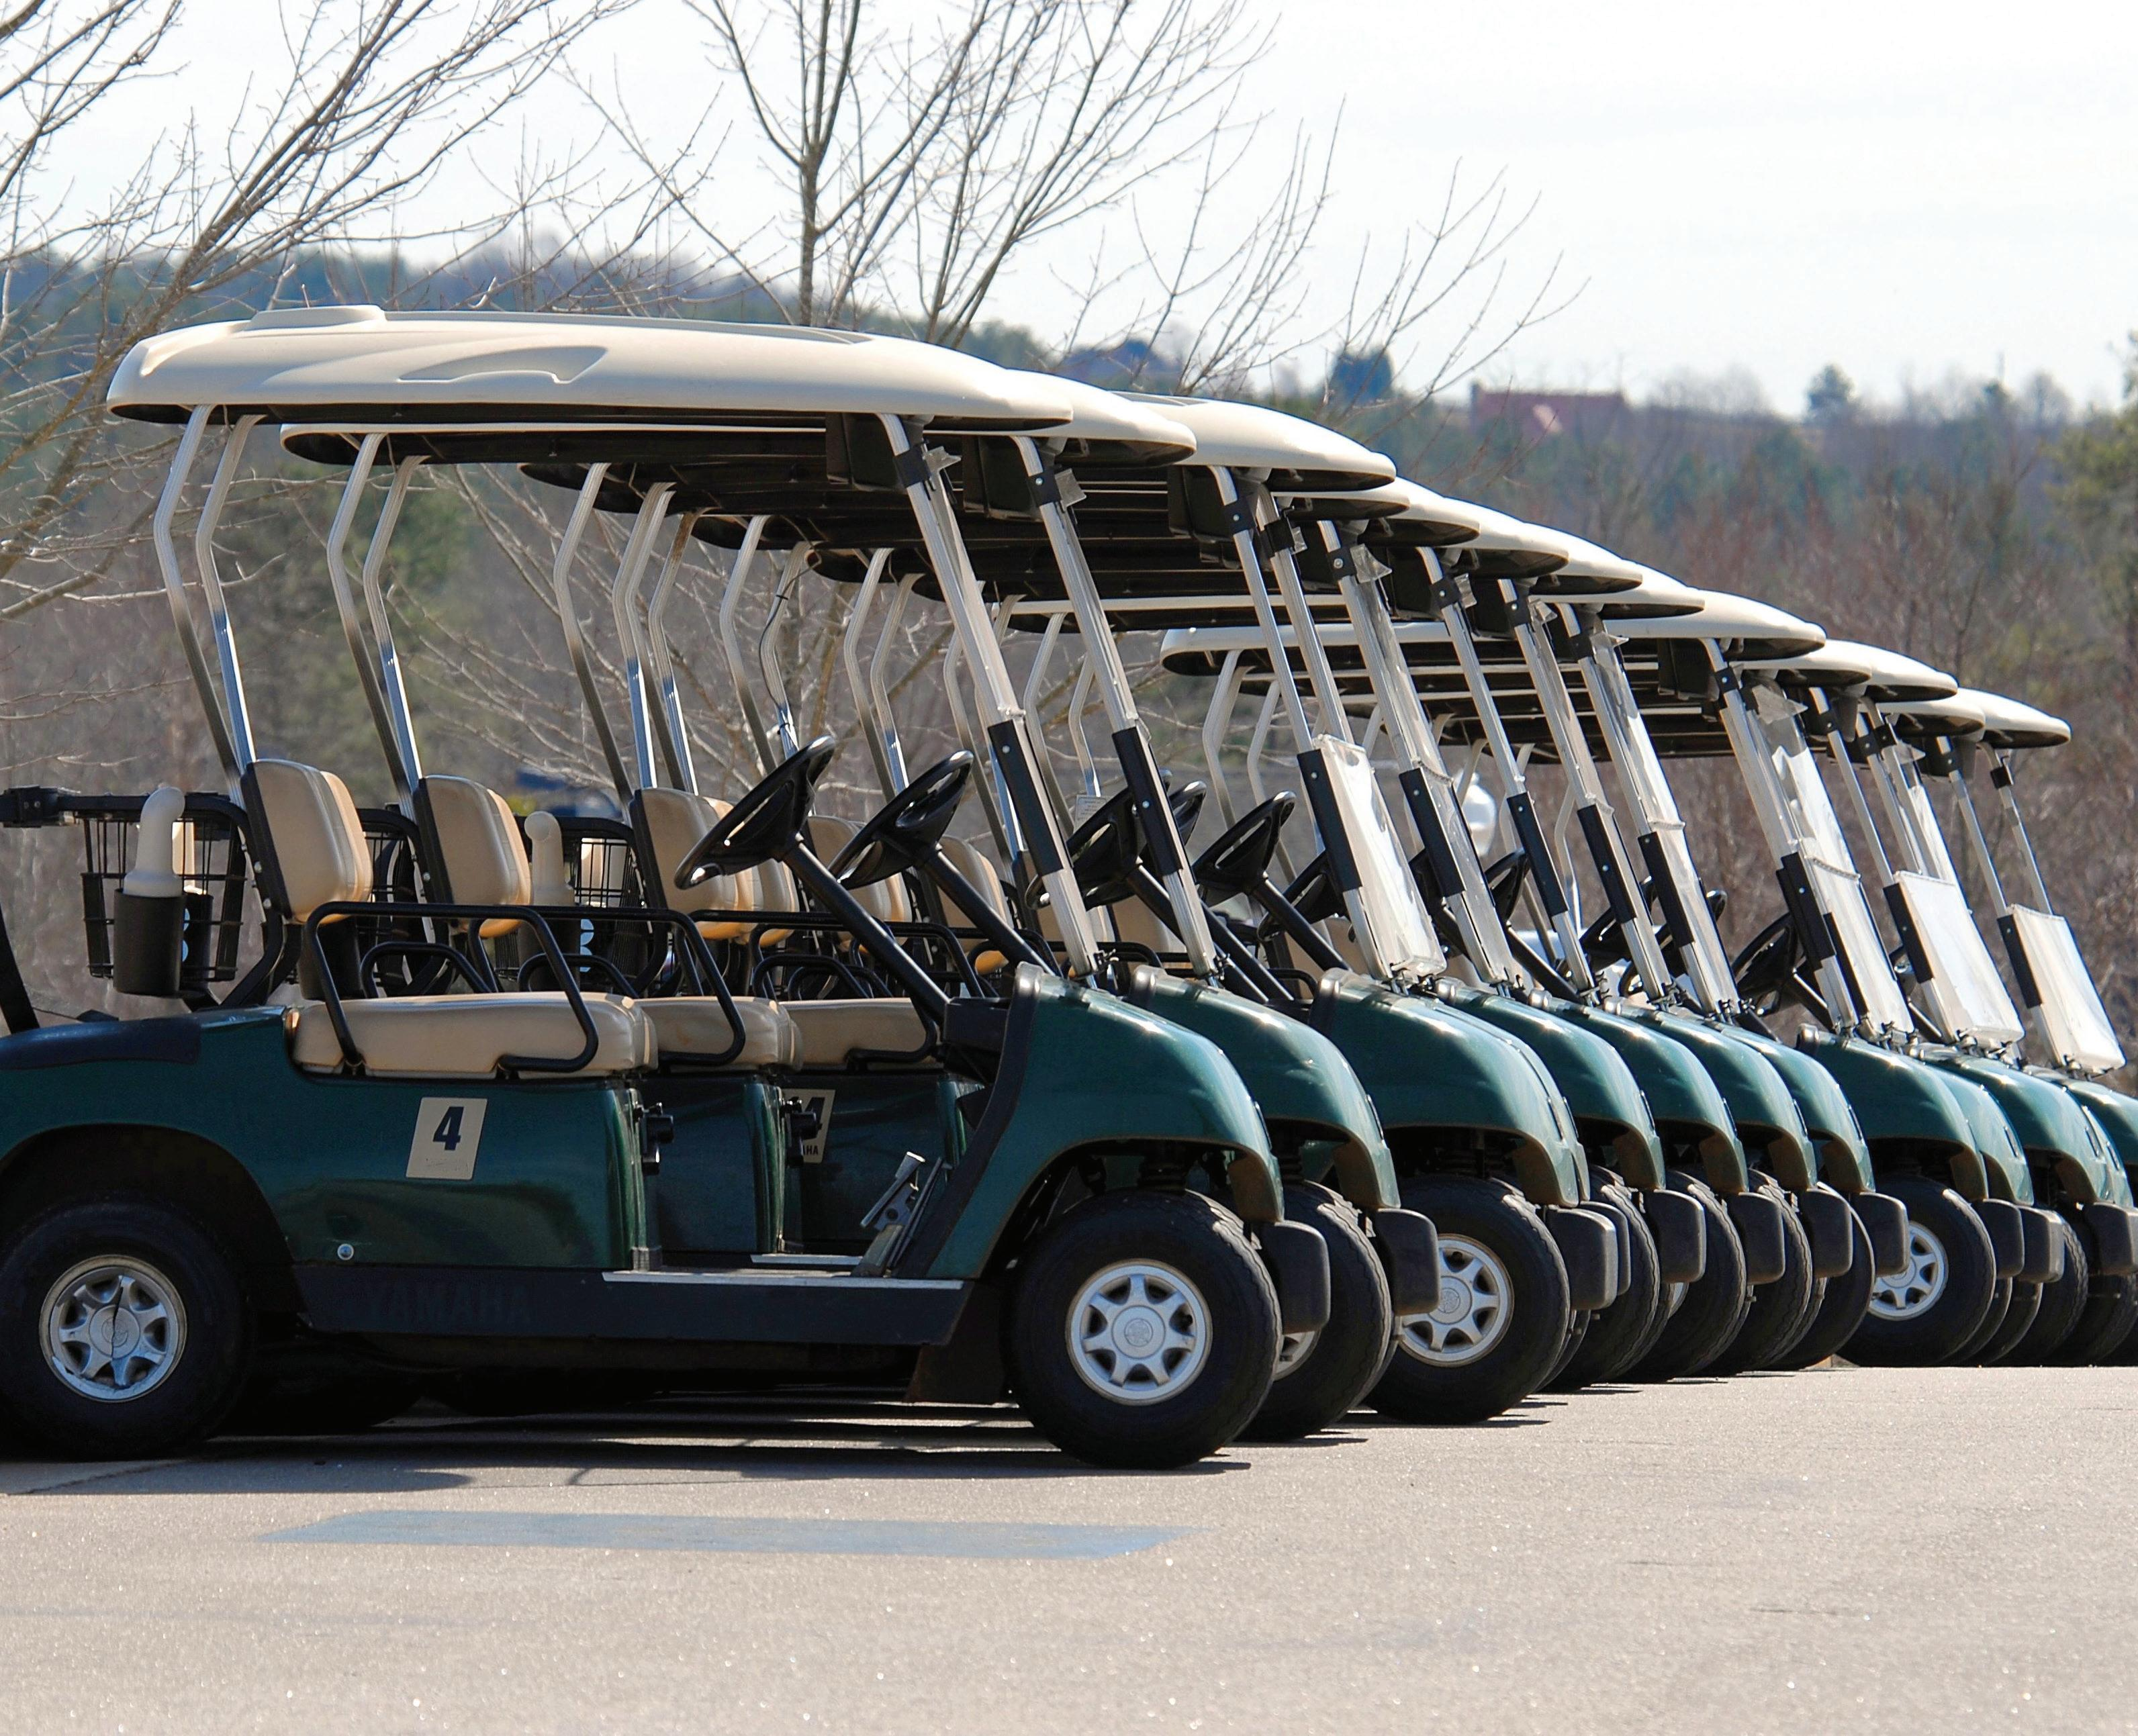 Page 42 of TOP 10 GOLF CART SAFETY TIPS